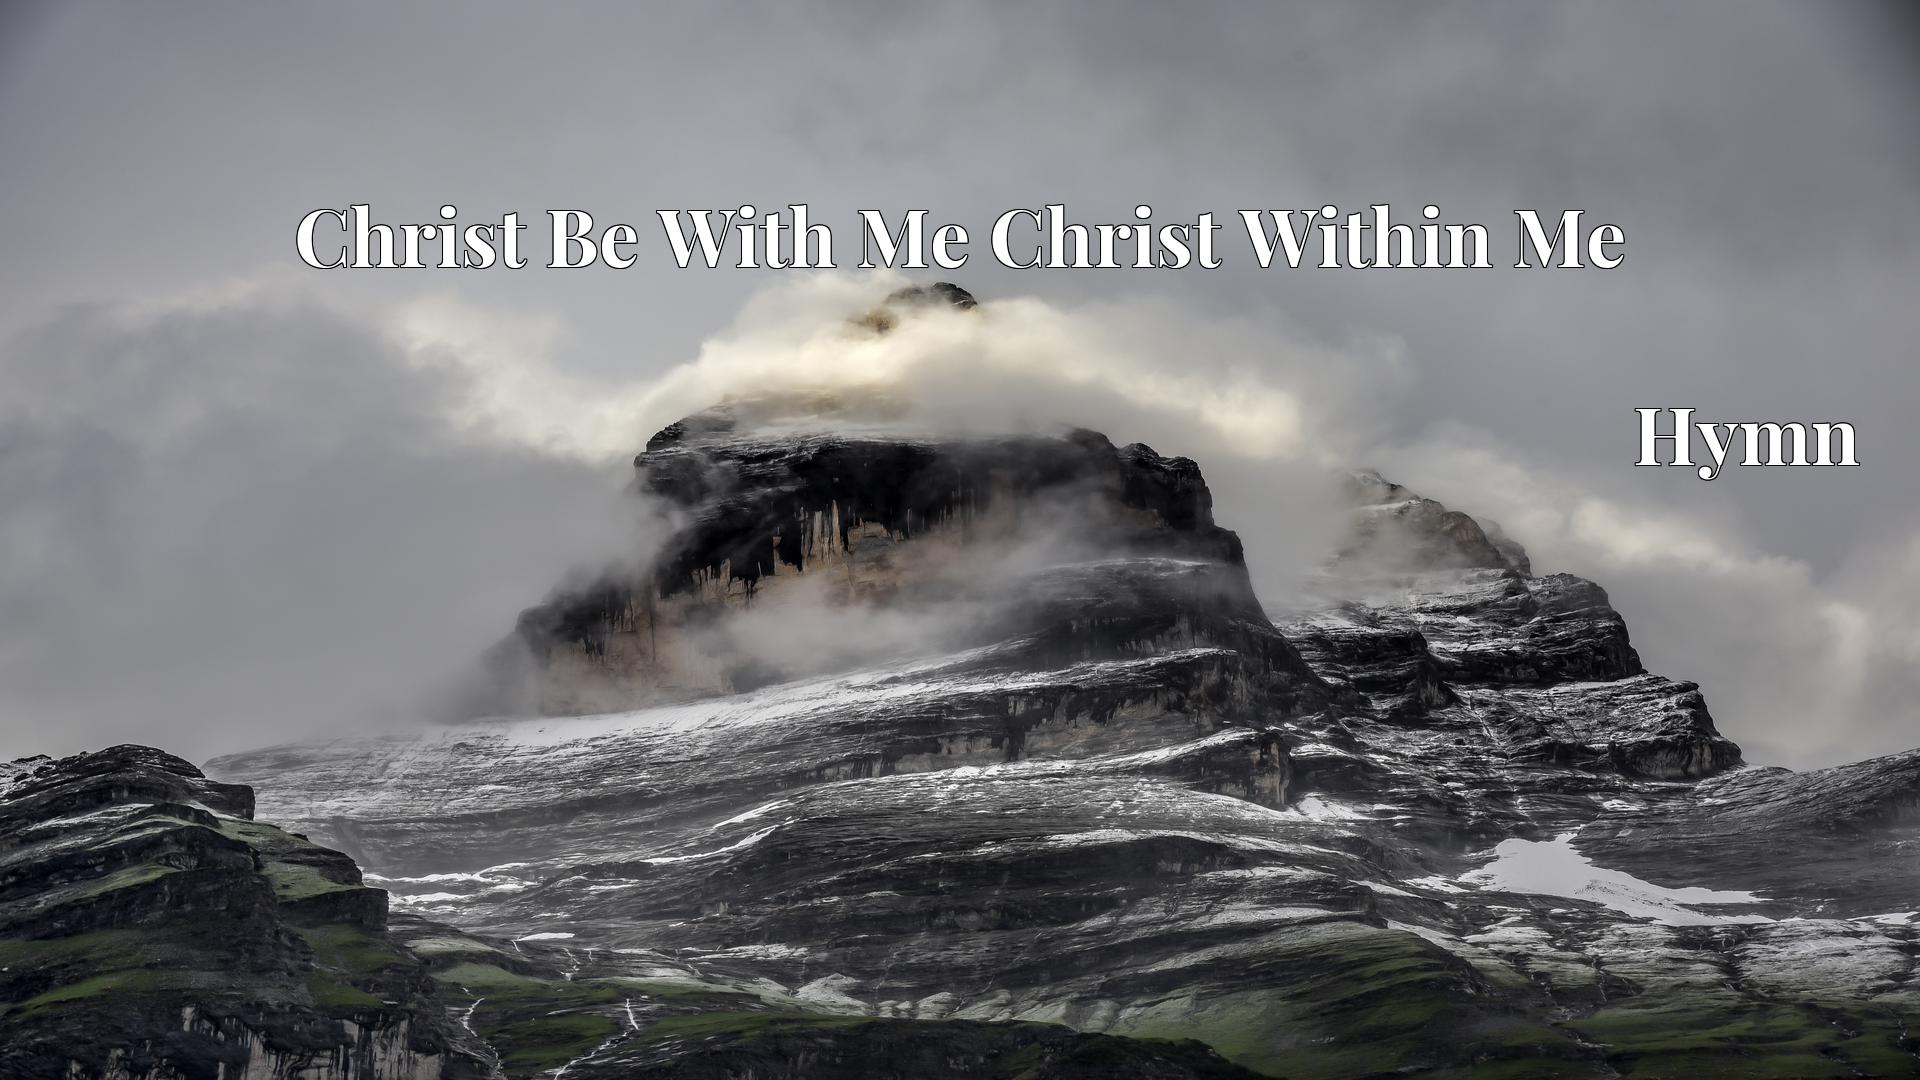 Christ Be With Me Christ Within Me - Hymn